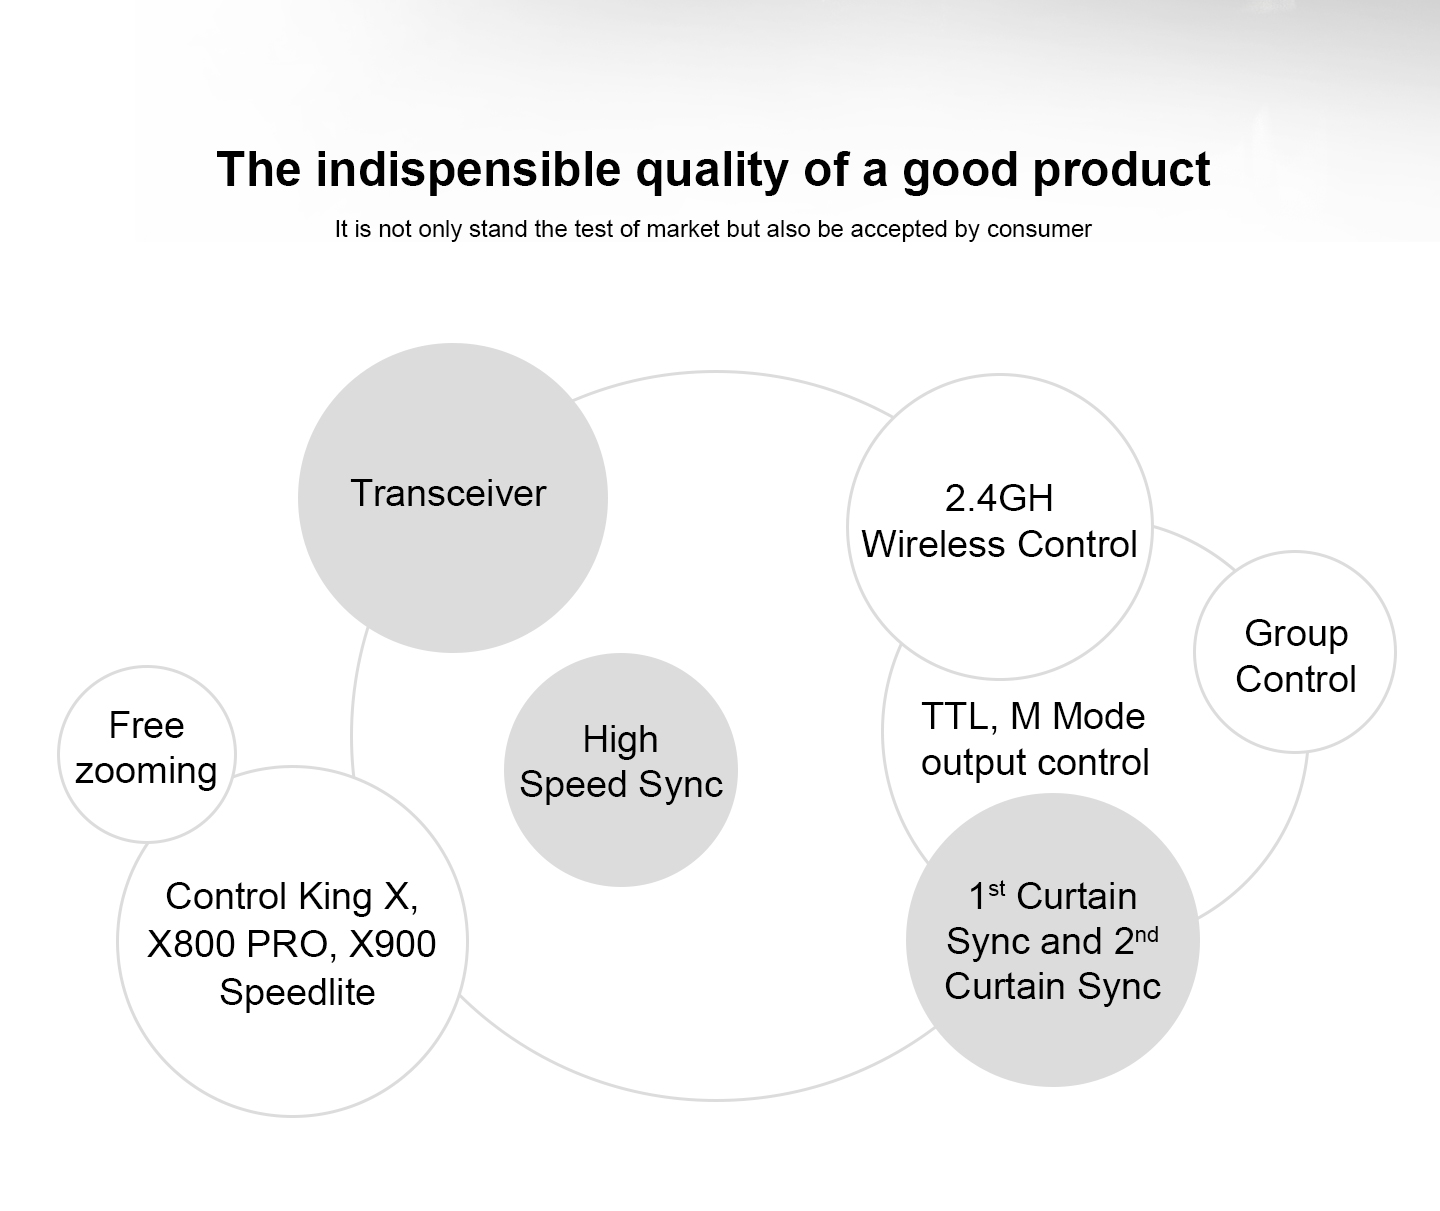 The indispensible quality of a good product